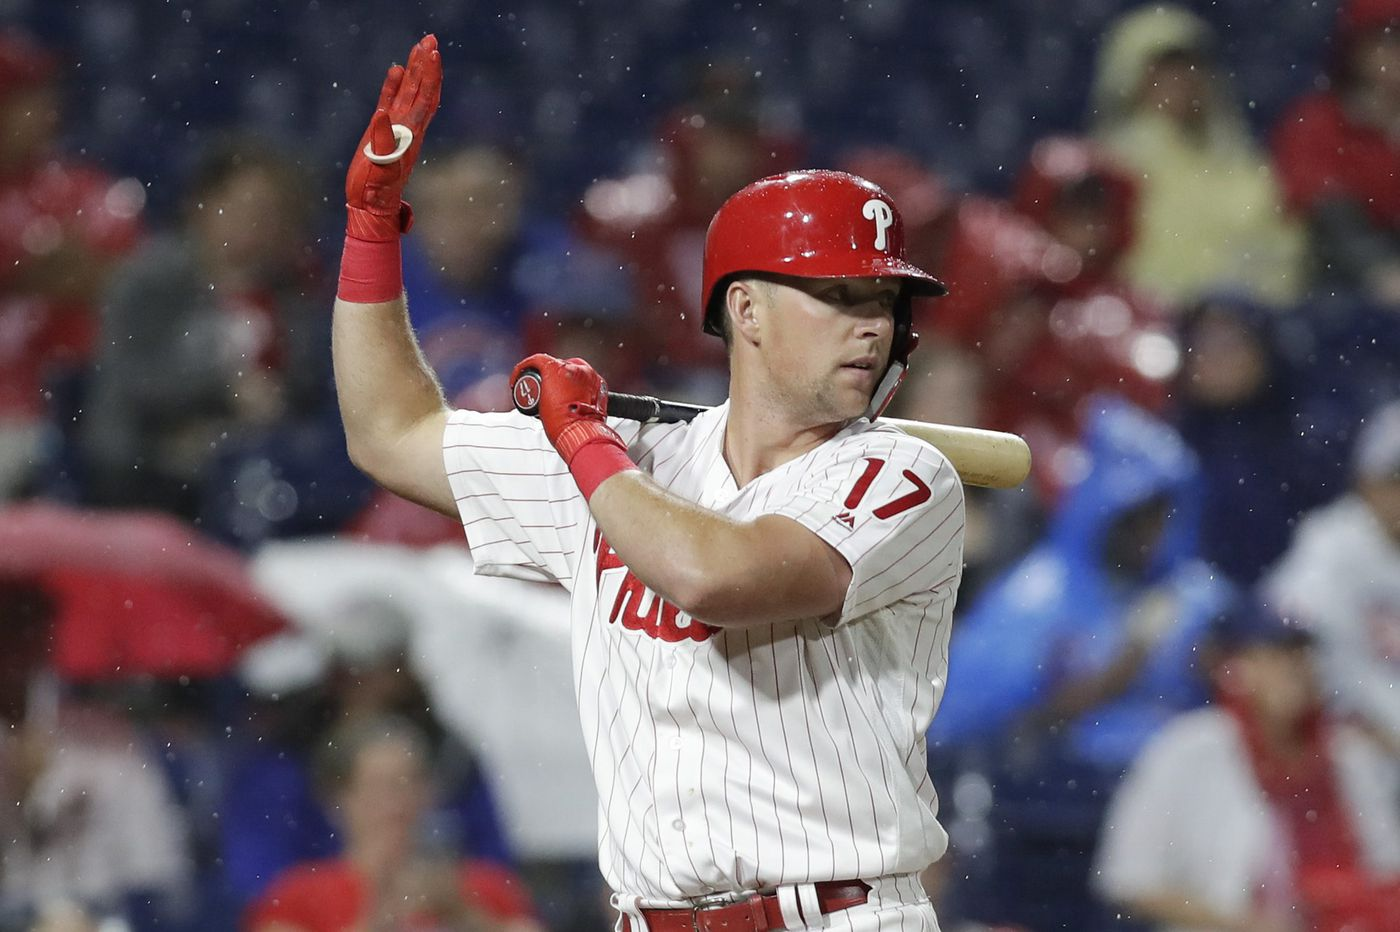 Rhys Hoskins searching for one more hot streak to put Phillies in the playoffs